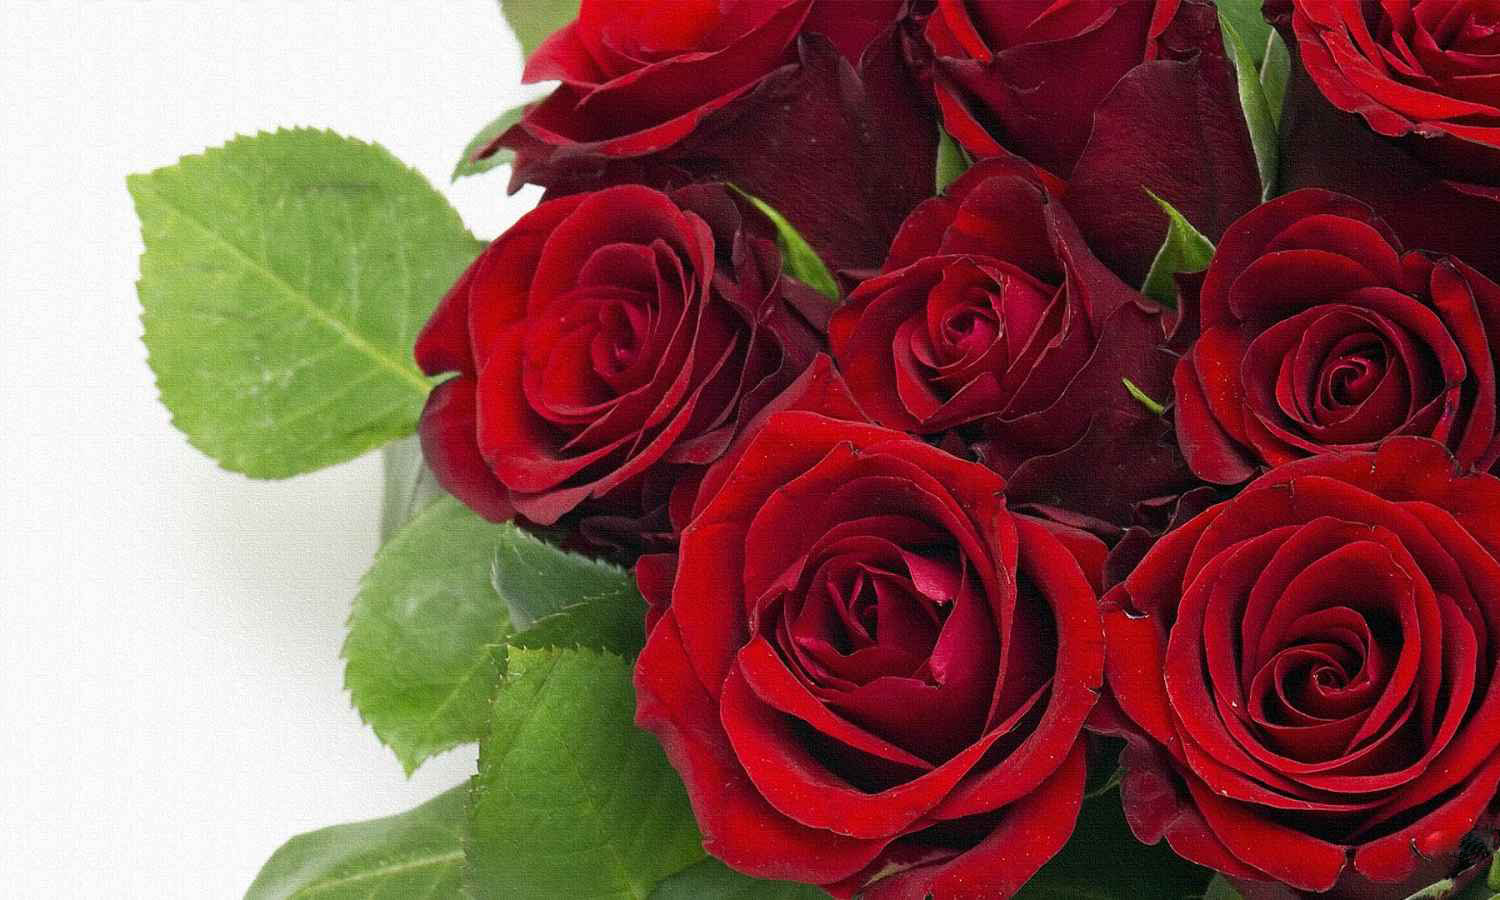 Beautiful rose images and wallpapers 13